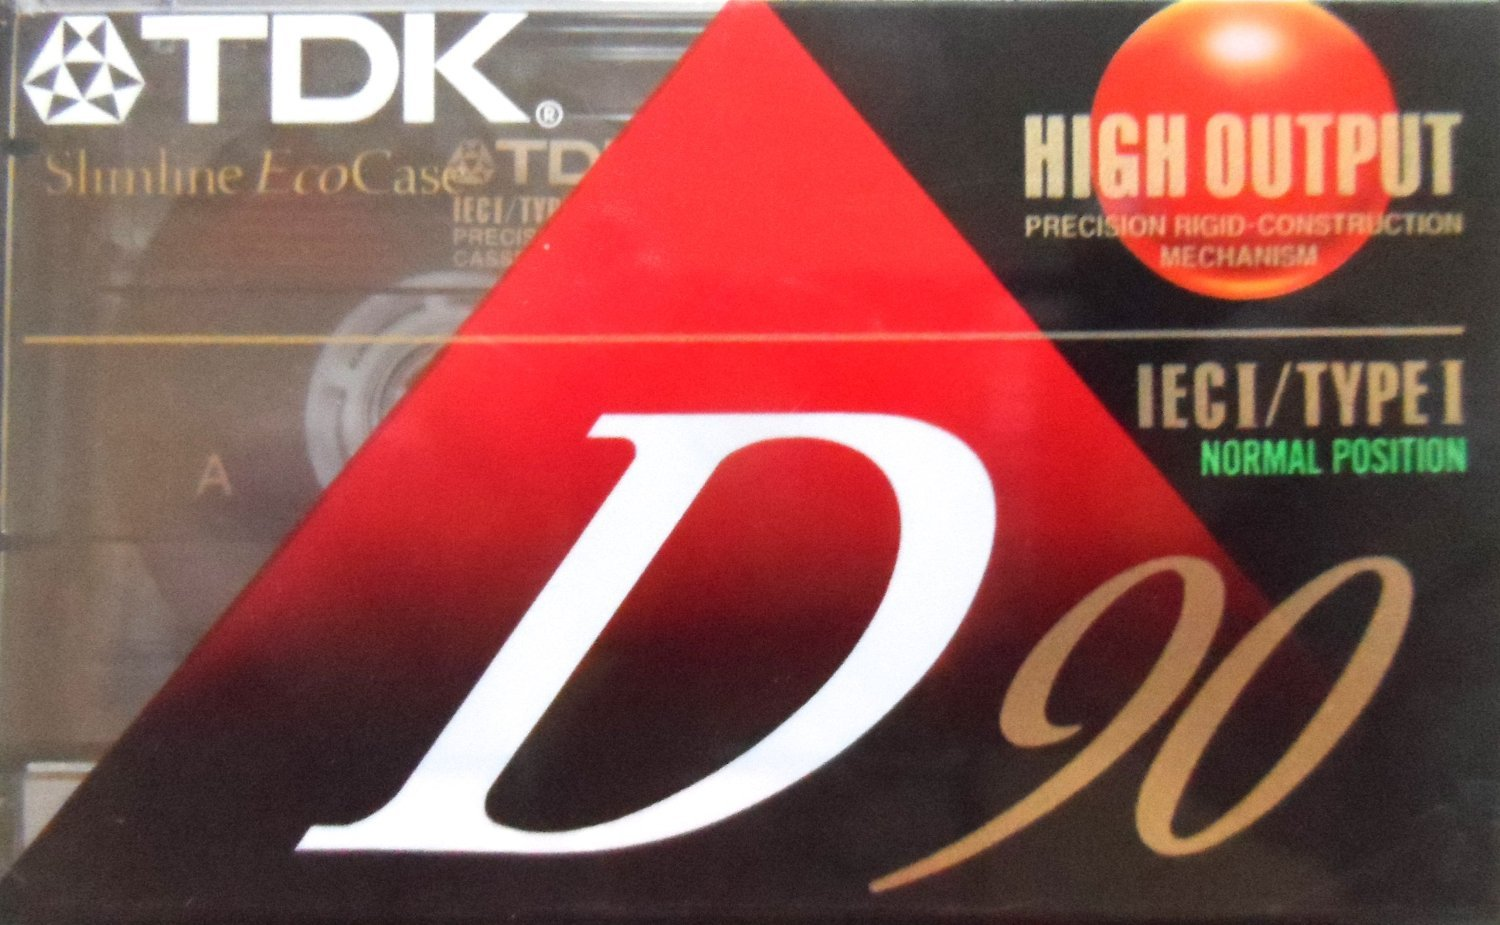 TDK D90 High Output 90 Minute IECI/Type I Cassette Tapes, Set of (7) by TDK